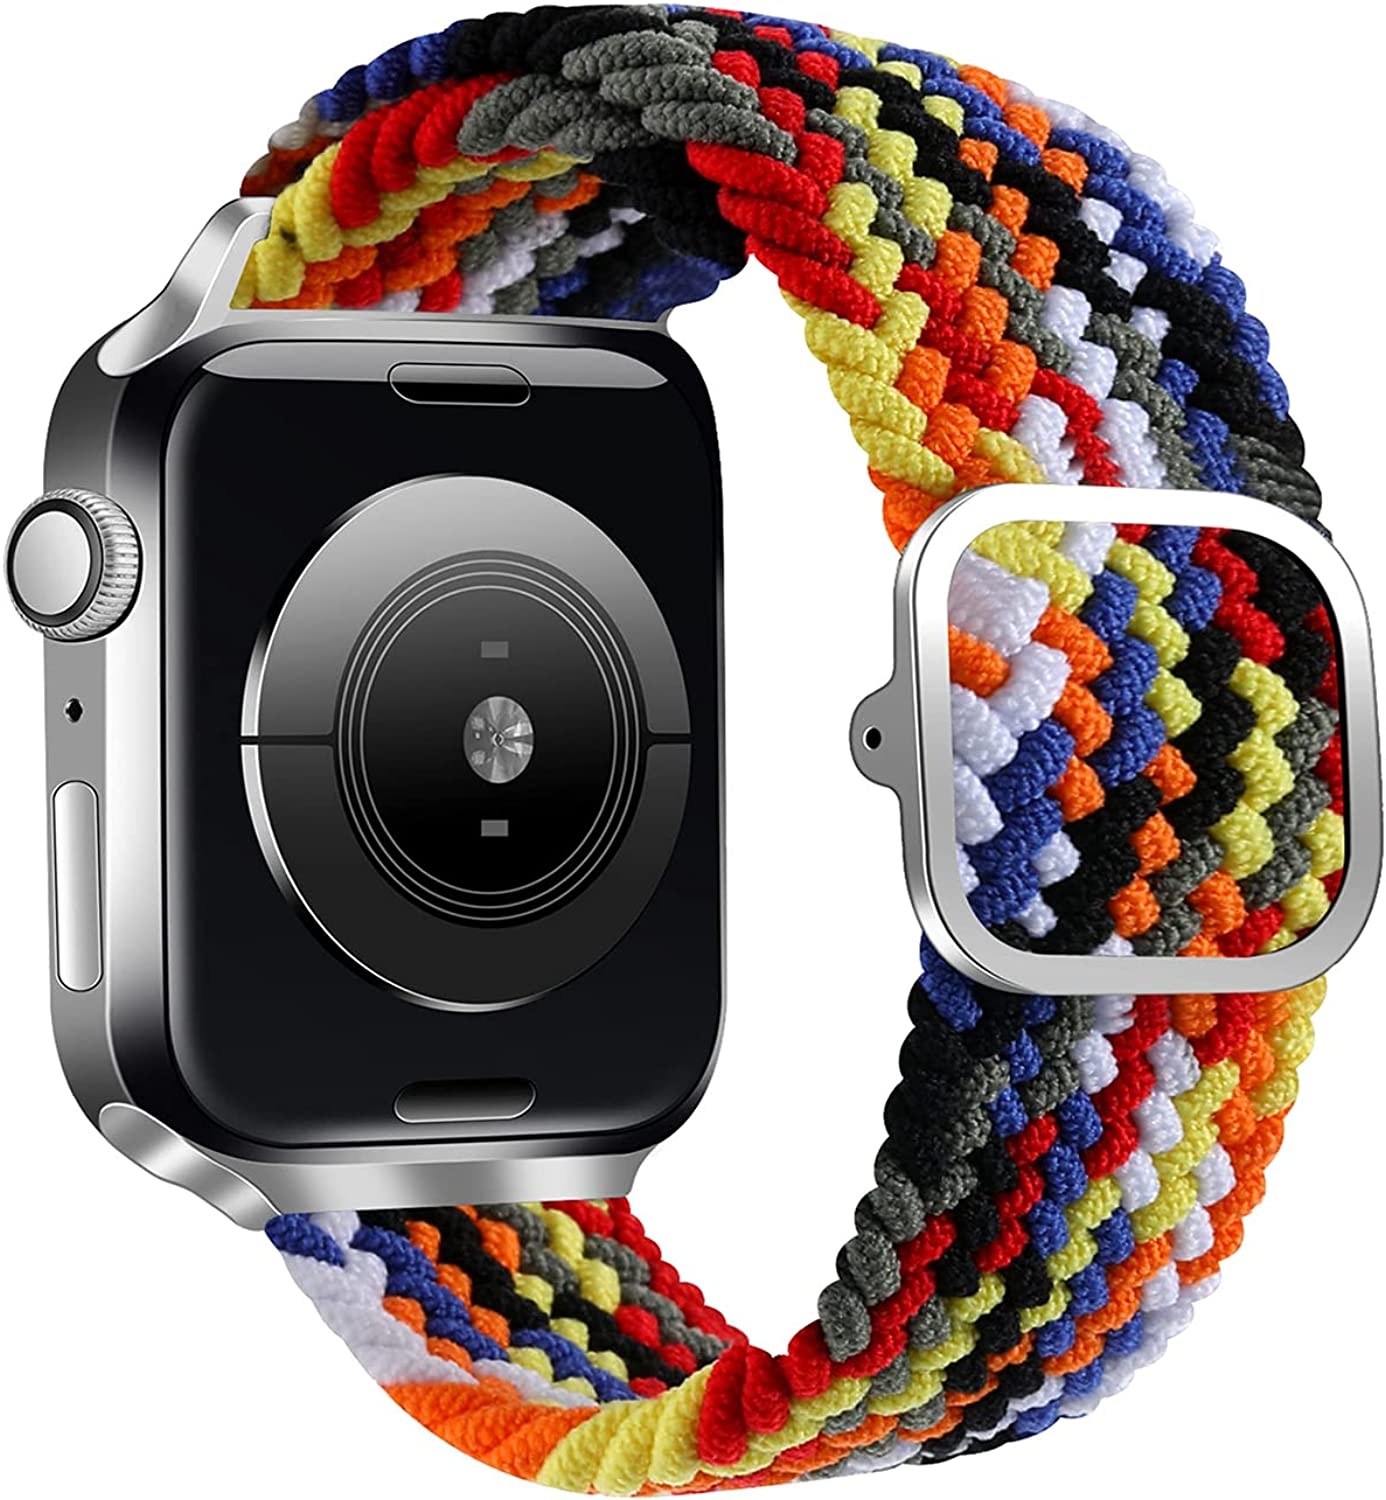 LKEITY Stretchy Sport Bands Compatible with Braided Solo Loop Apple Watch Band 38mm 40mm 42mm 44mm, Adjustable Stretchable Elastics Nylon Soft Strap for iWatch Series 6/5/4/3/2/1/SE